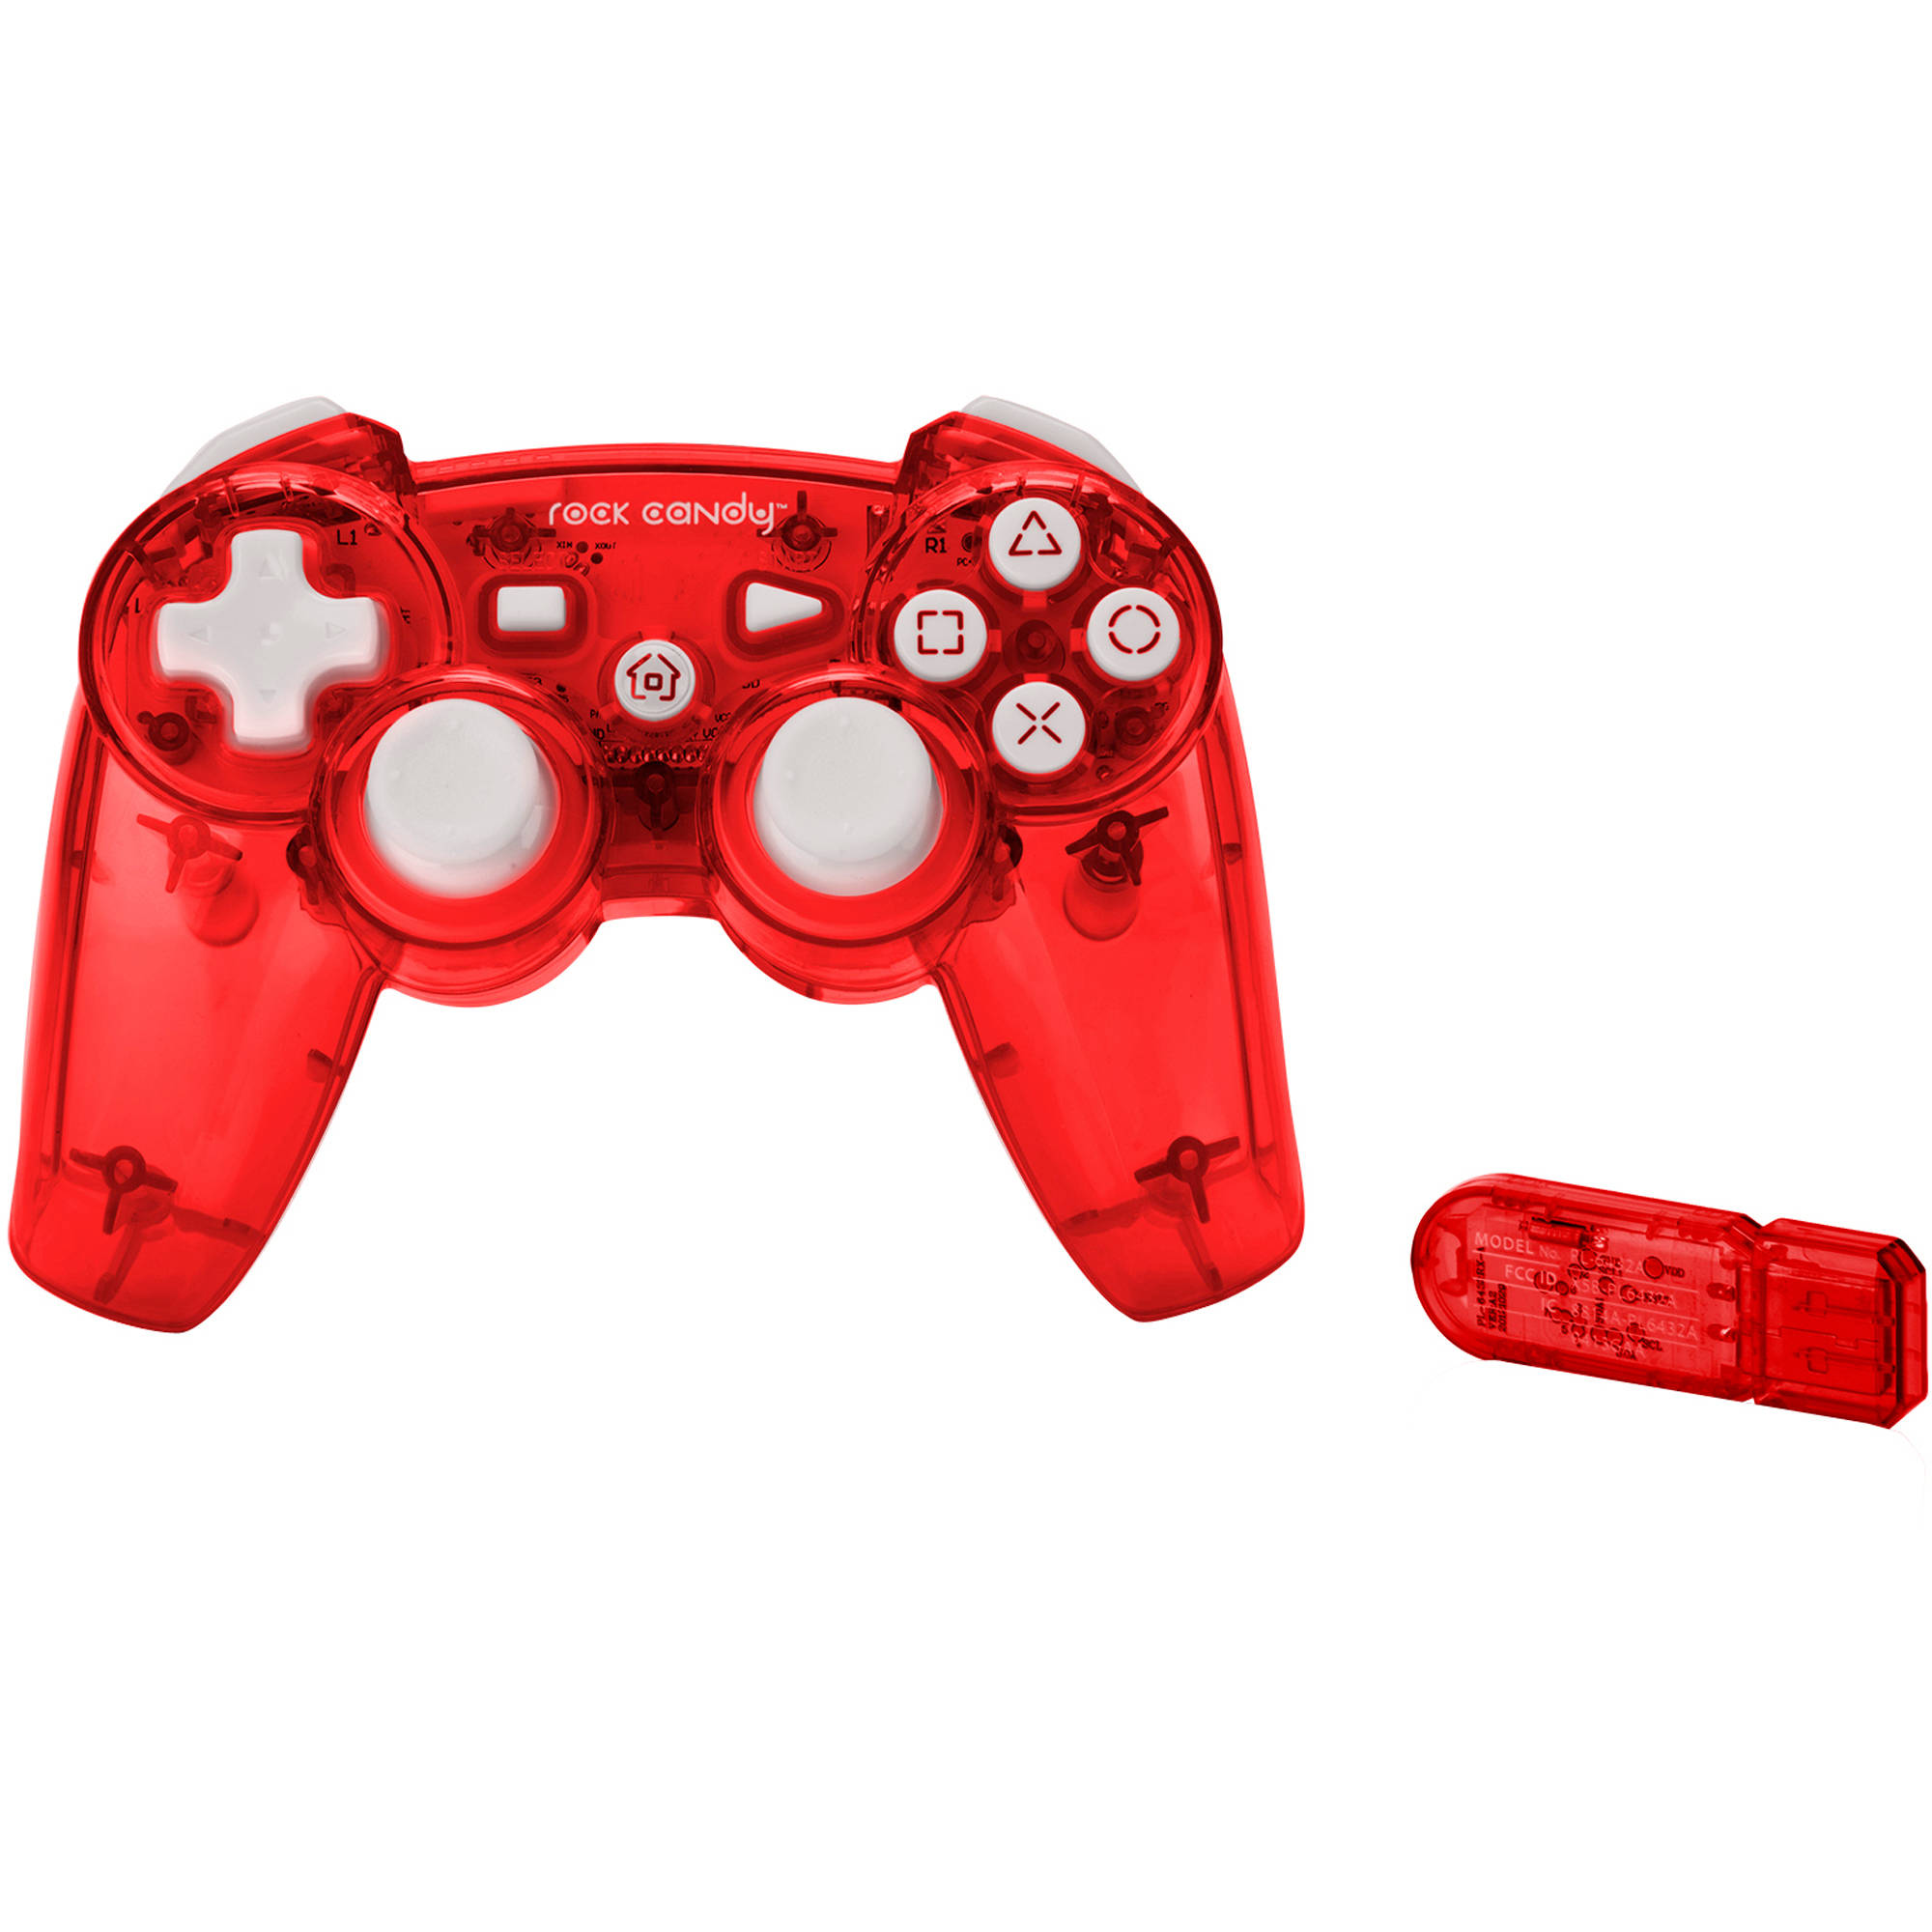 how to get a free playstation 3 controller